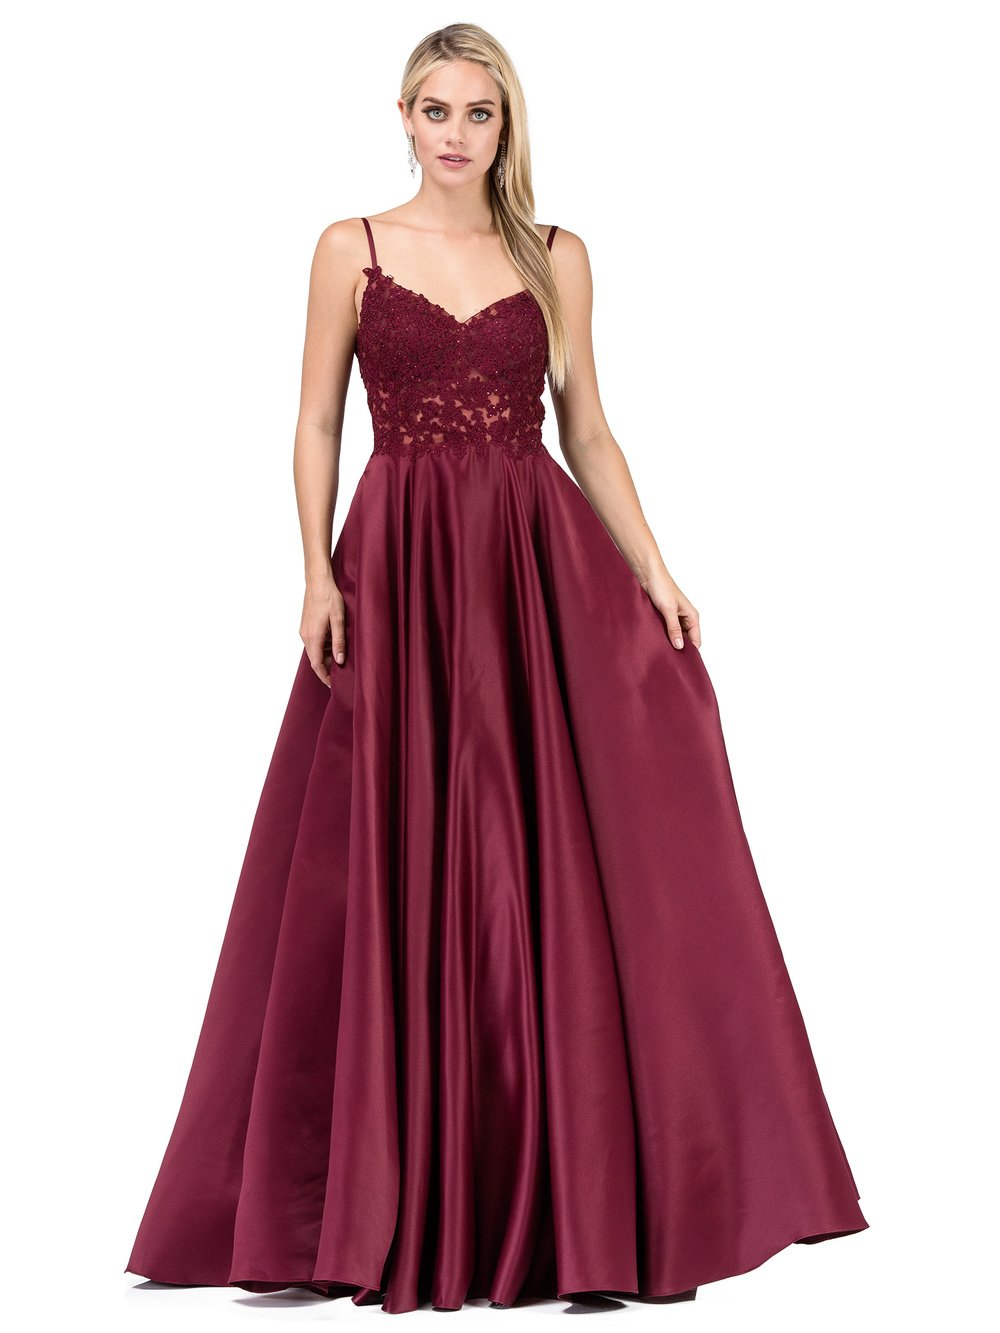 Wine Full Ball Gown with Lace & Jeweled Sweetheart Neck